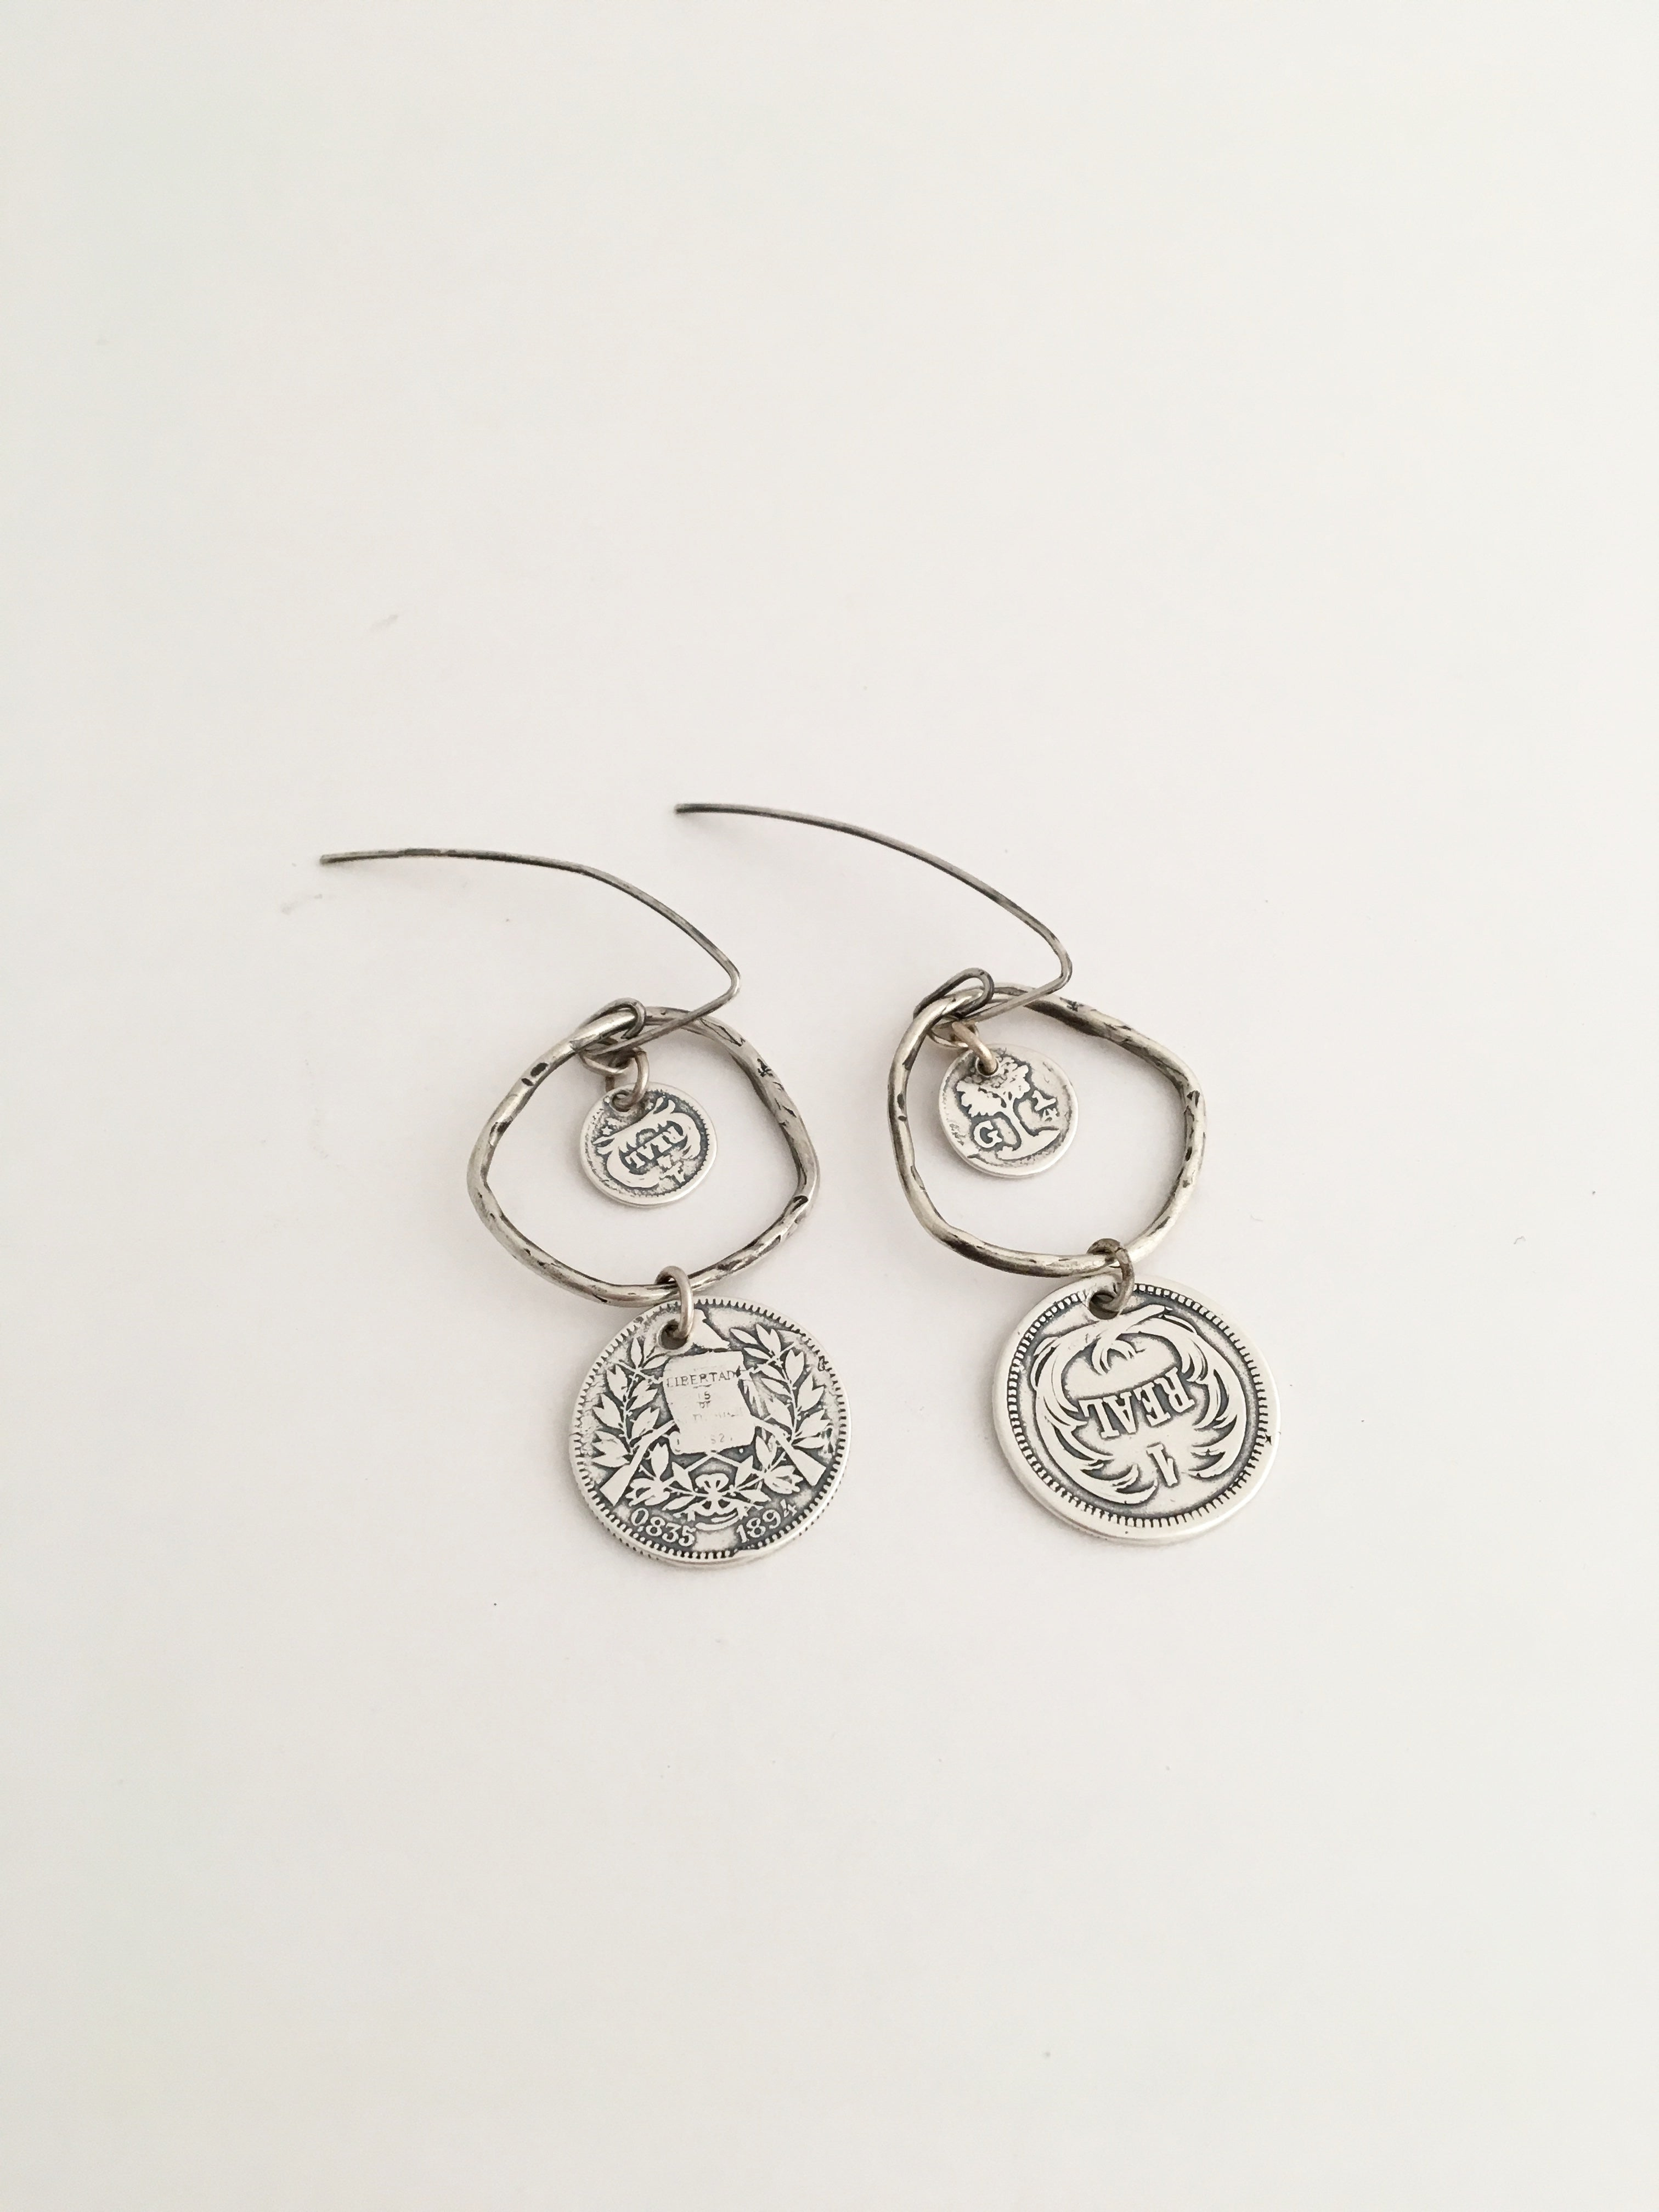 Spanish Galleon Coin Earrings